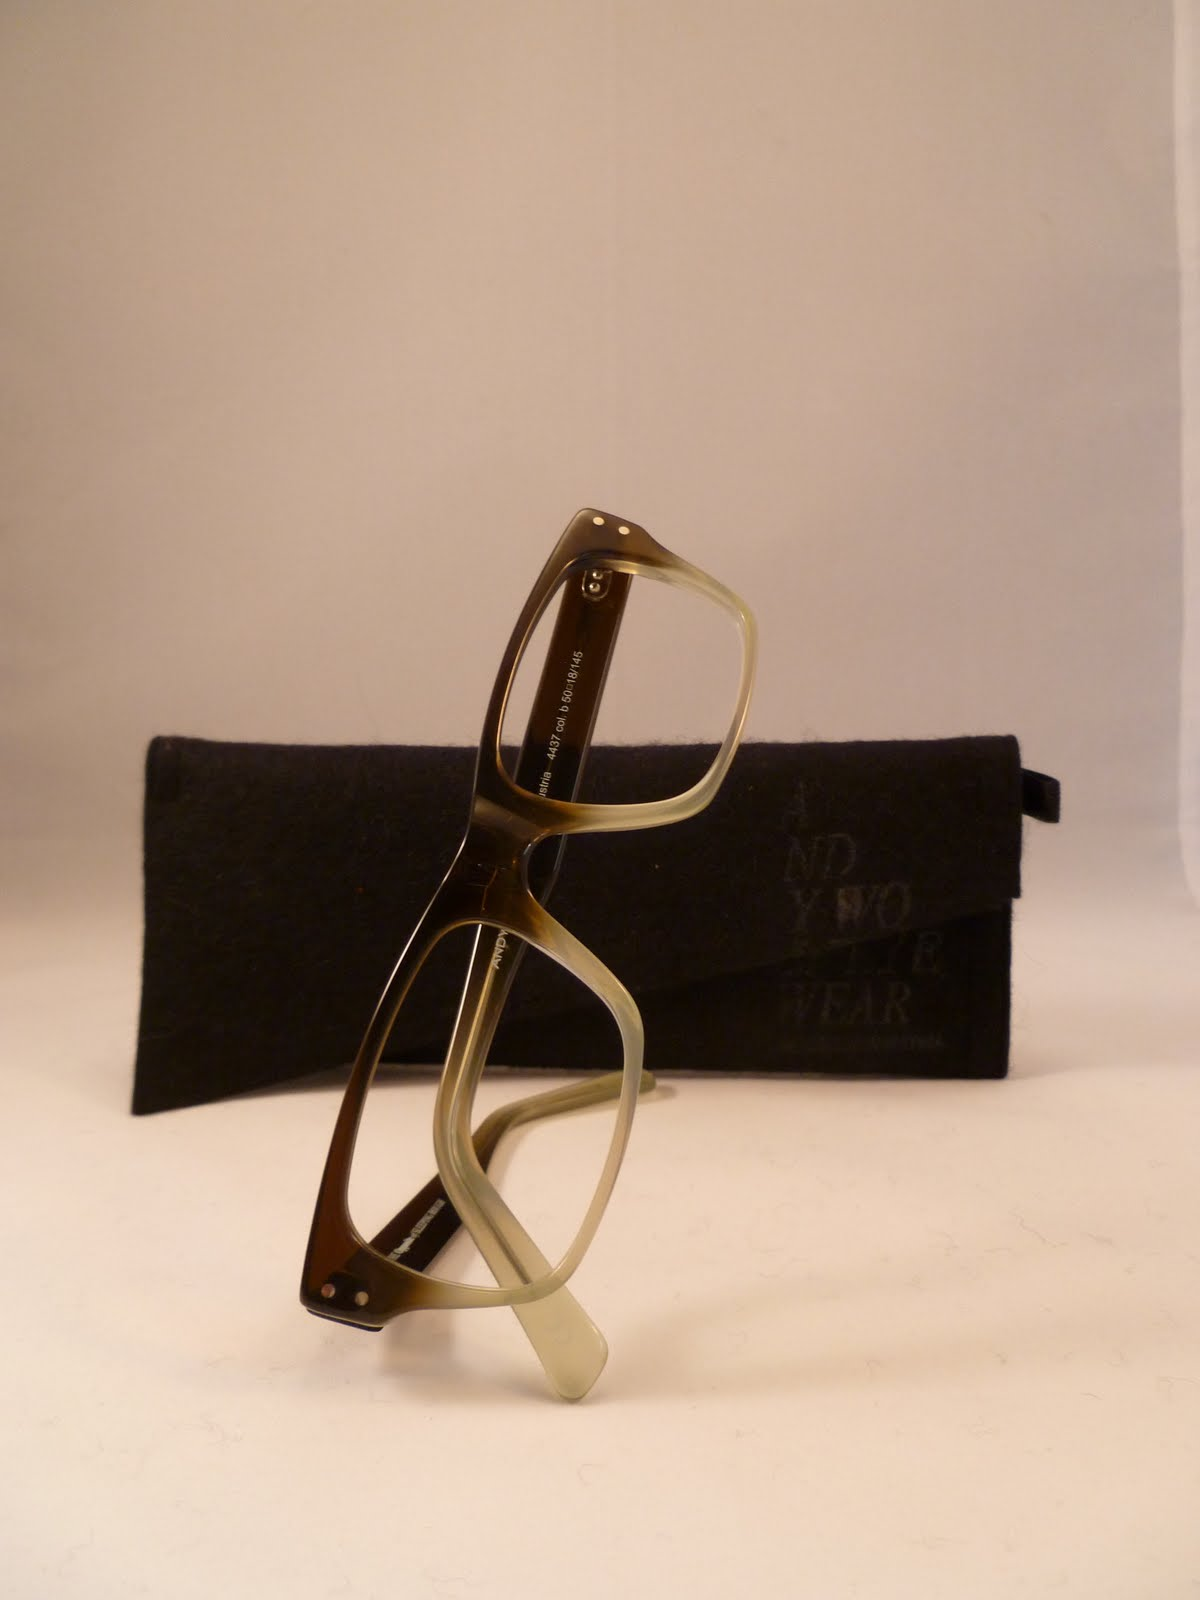 CATEYE Spectacles: Andy Wolf Eyewear Trunk Show